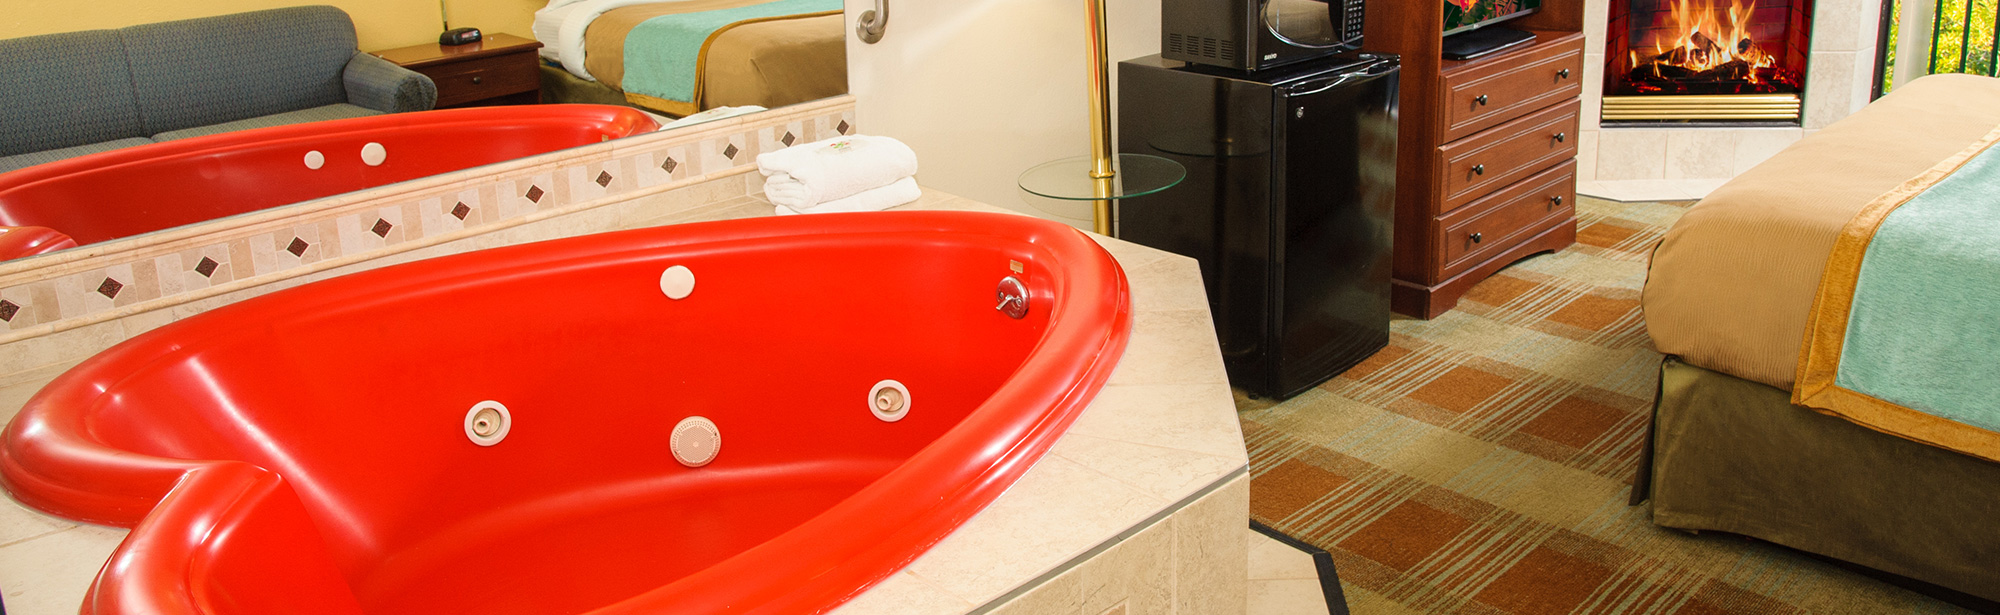 Red Heart shaped Jacuzzi